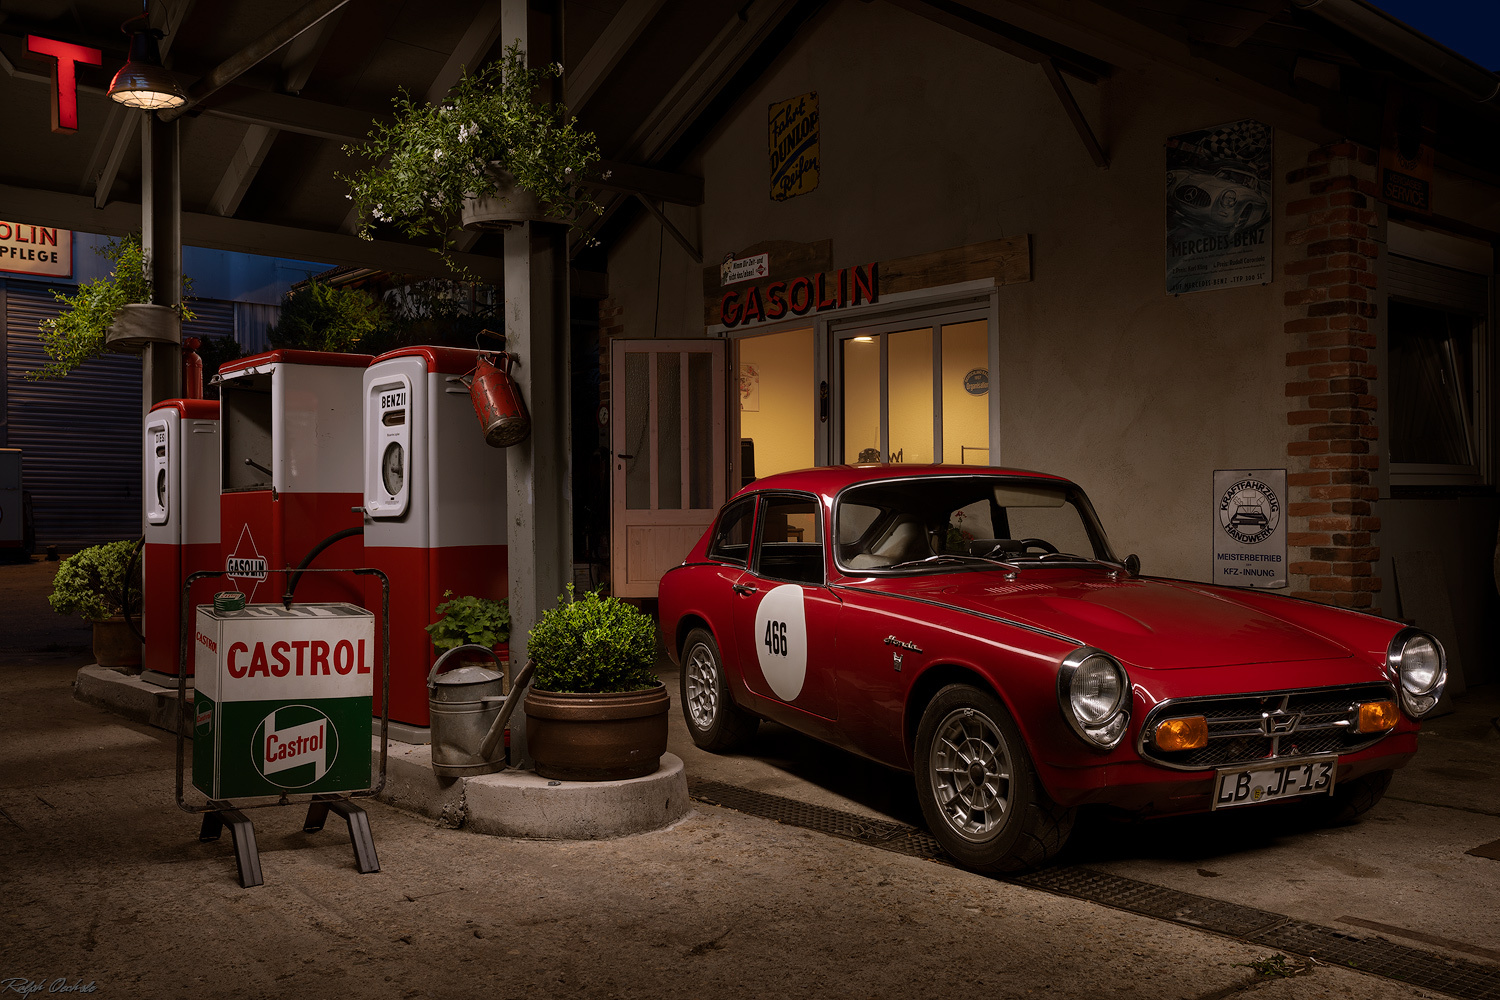 Classic gas station by Ralph Oechsle